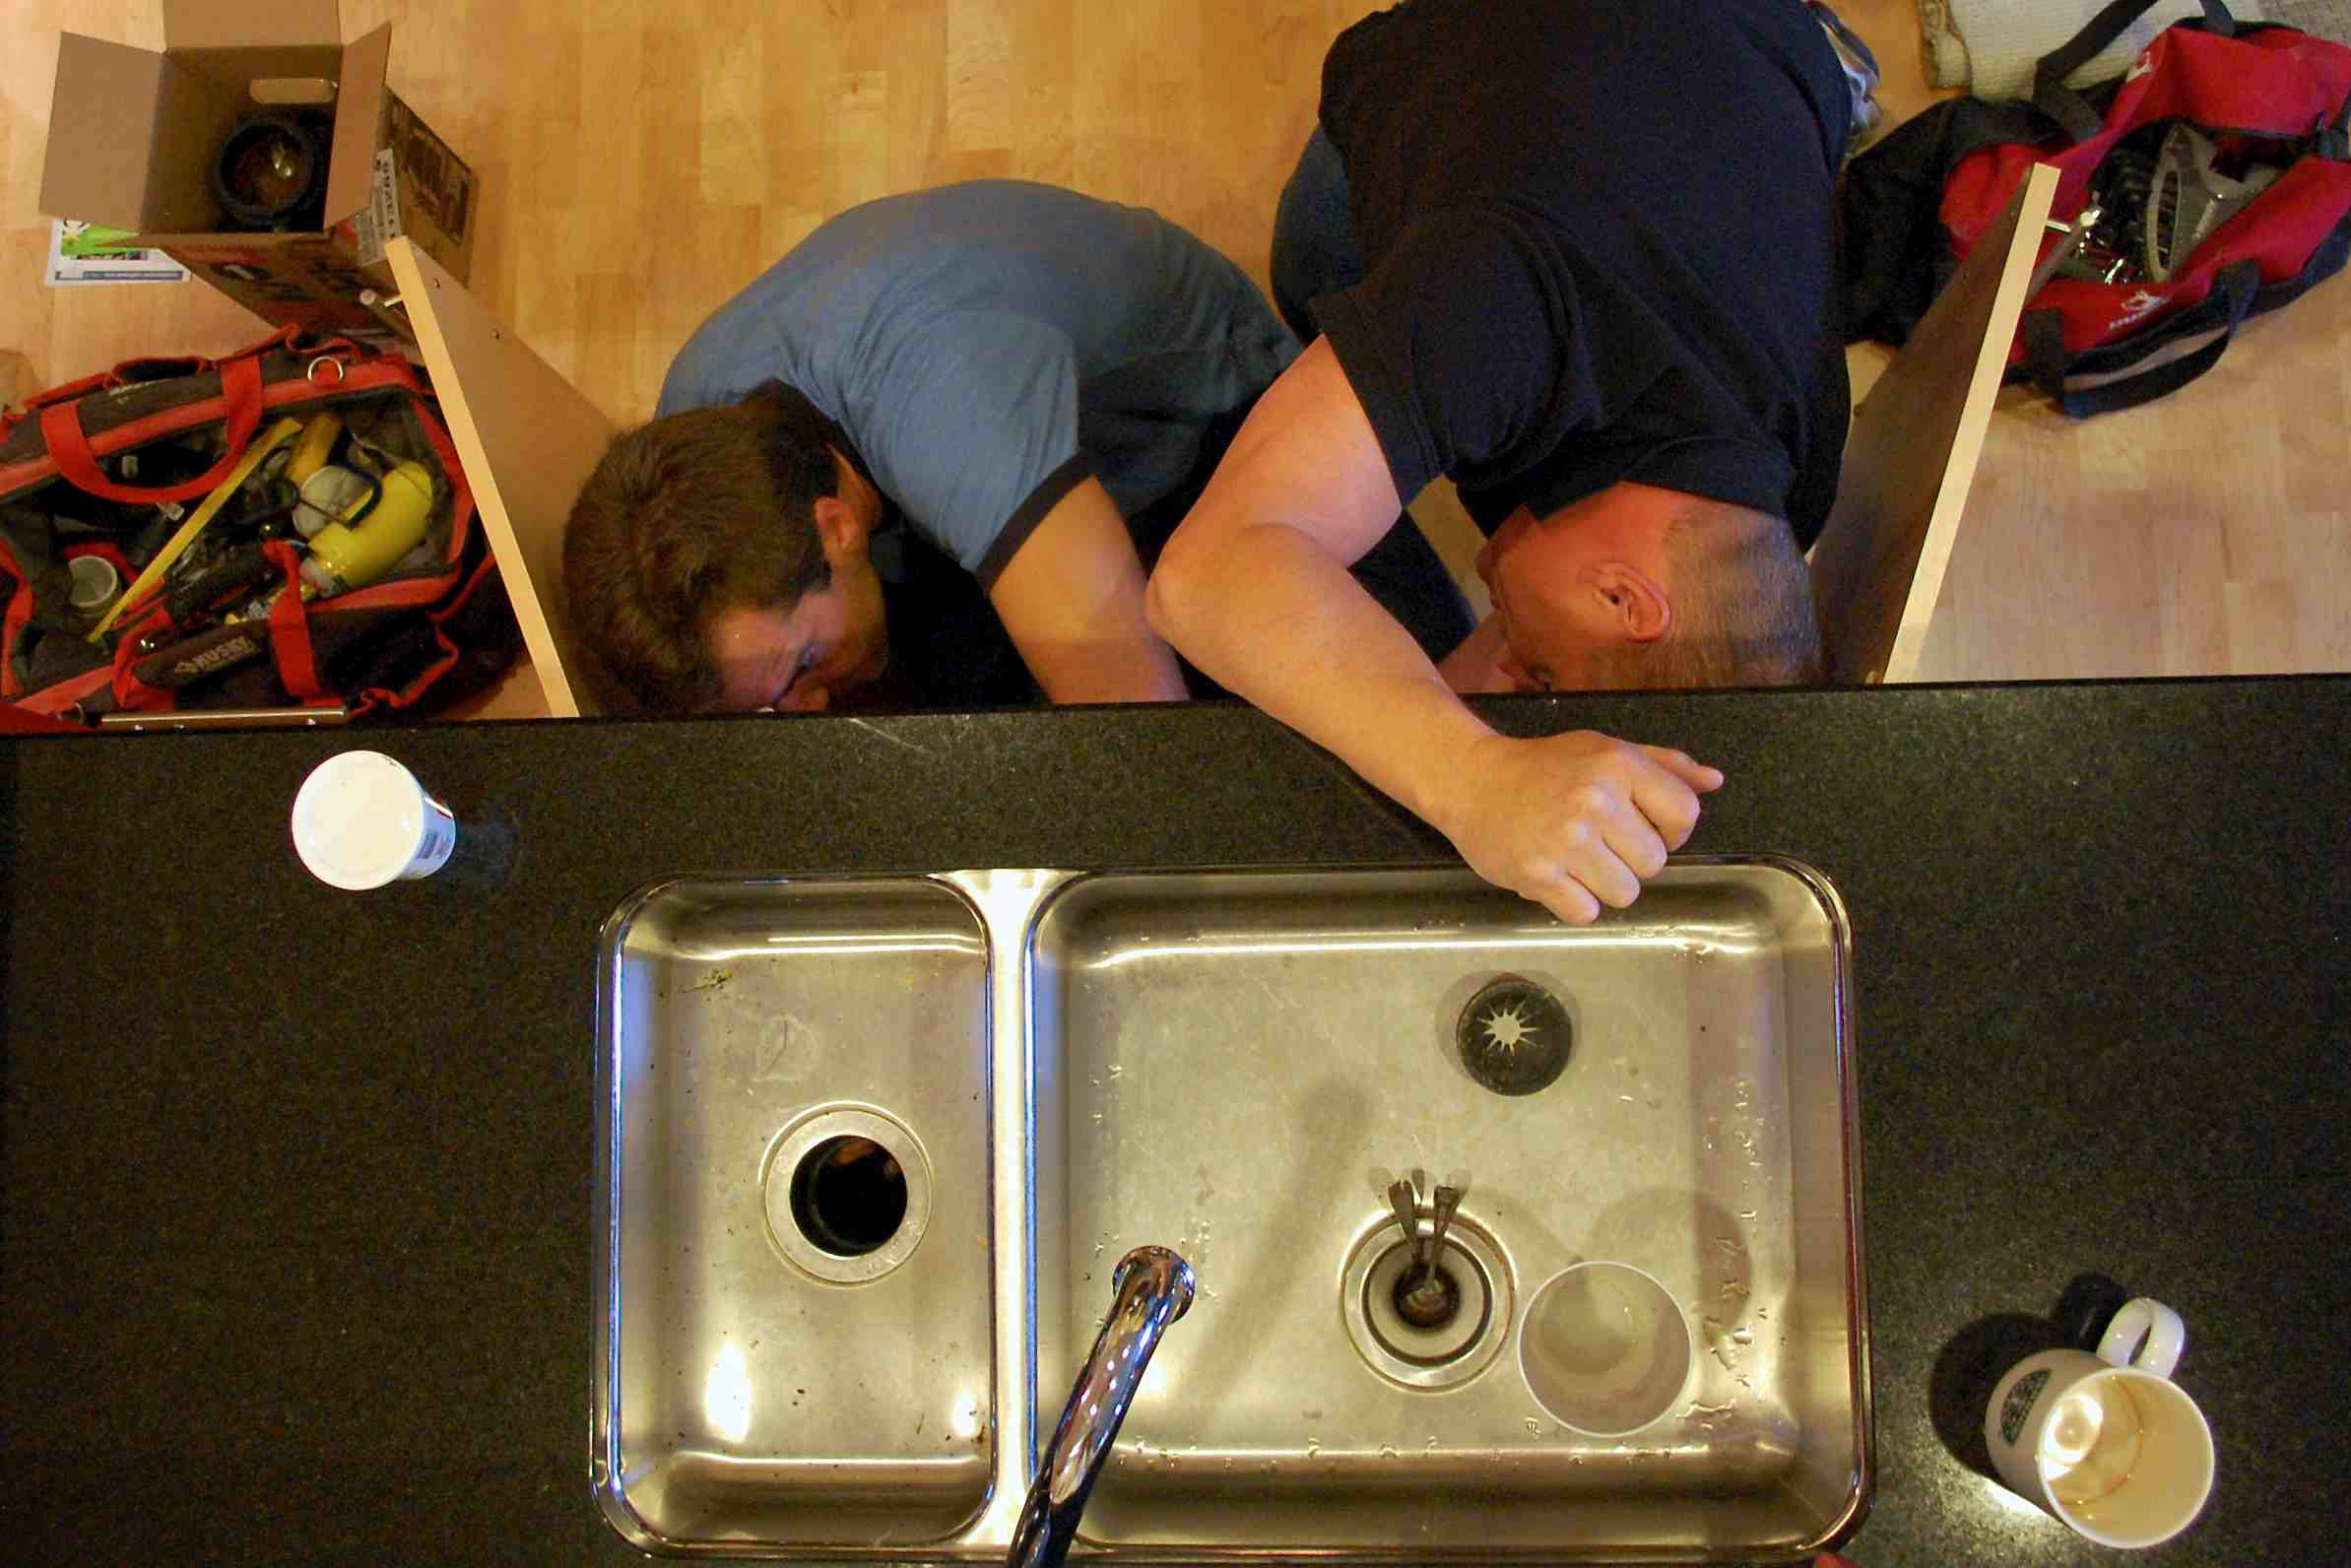 How To Install A Garbage Disposal Wiring And Dishwasher